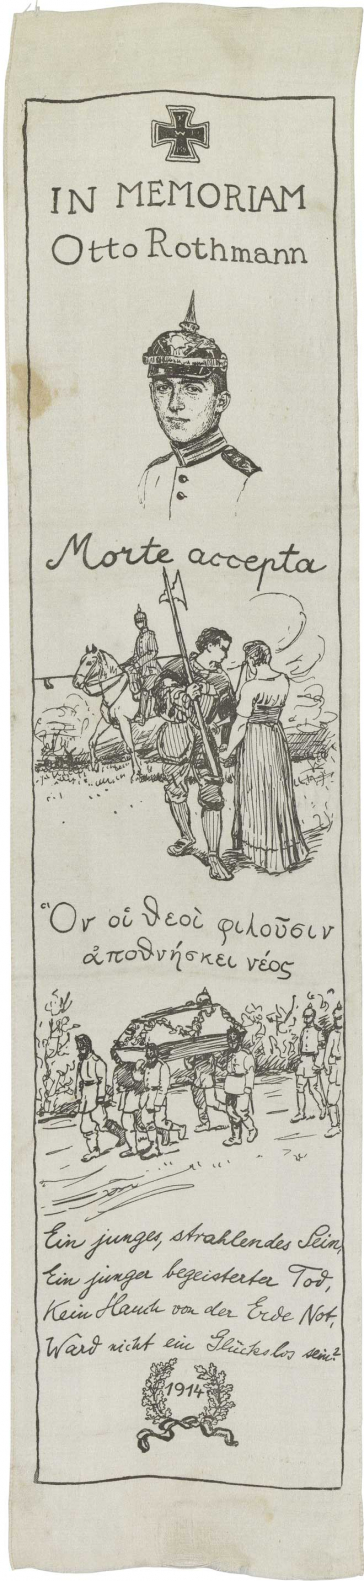 White silk ribbon, printed with iron cross (top), three illustrations and a victory wreath with the year 1914 (below)